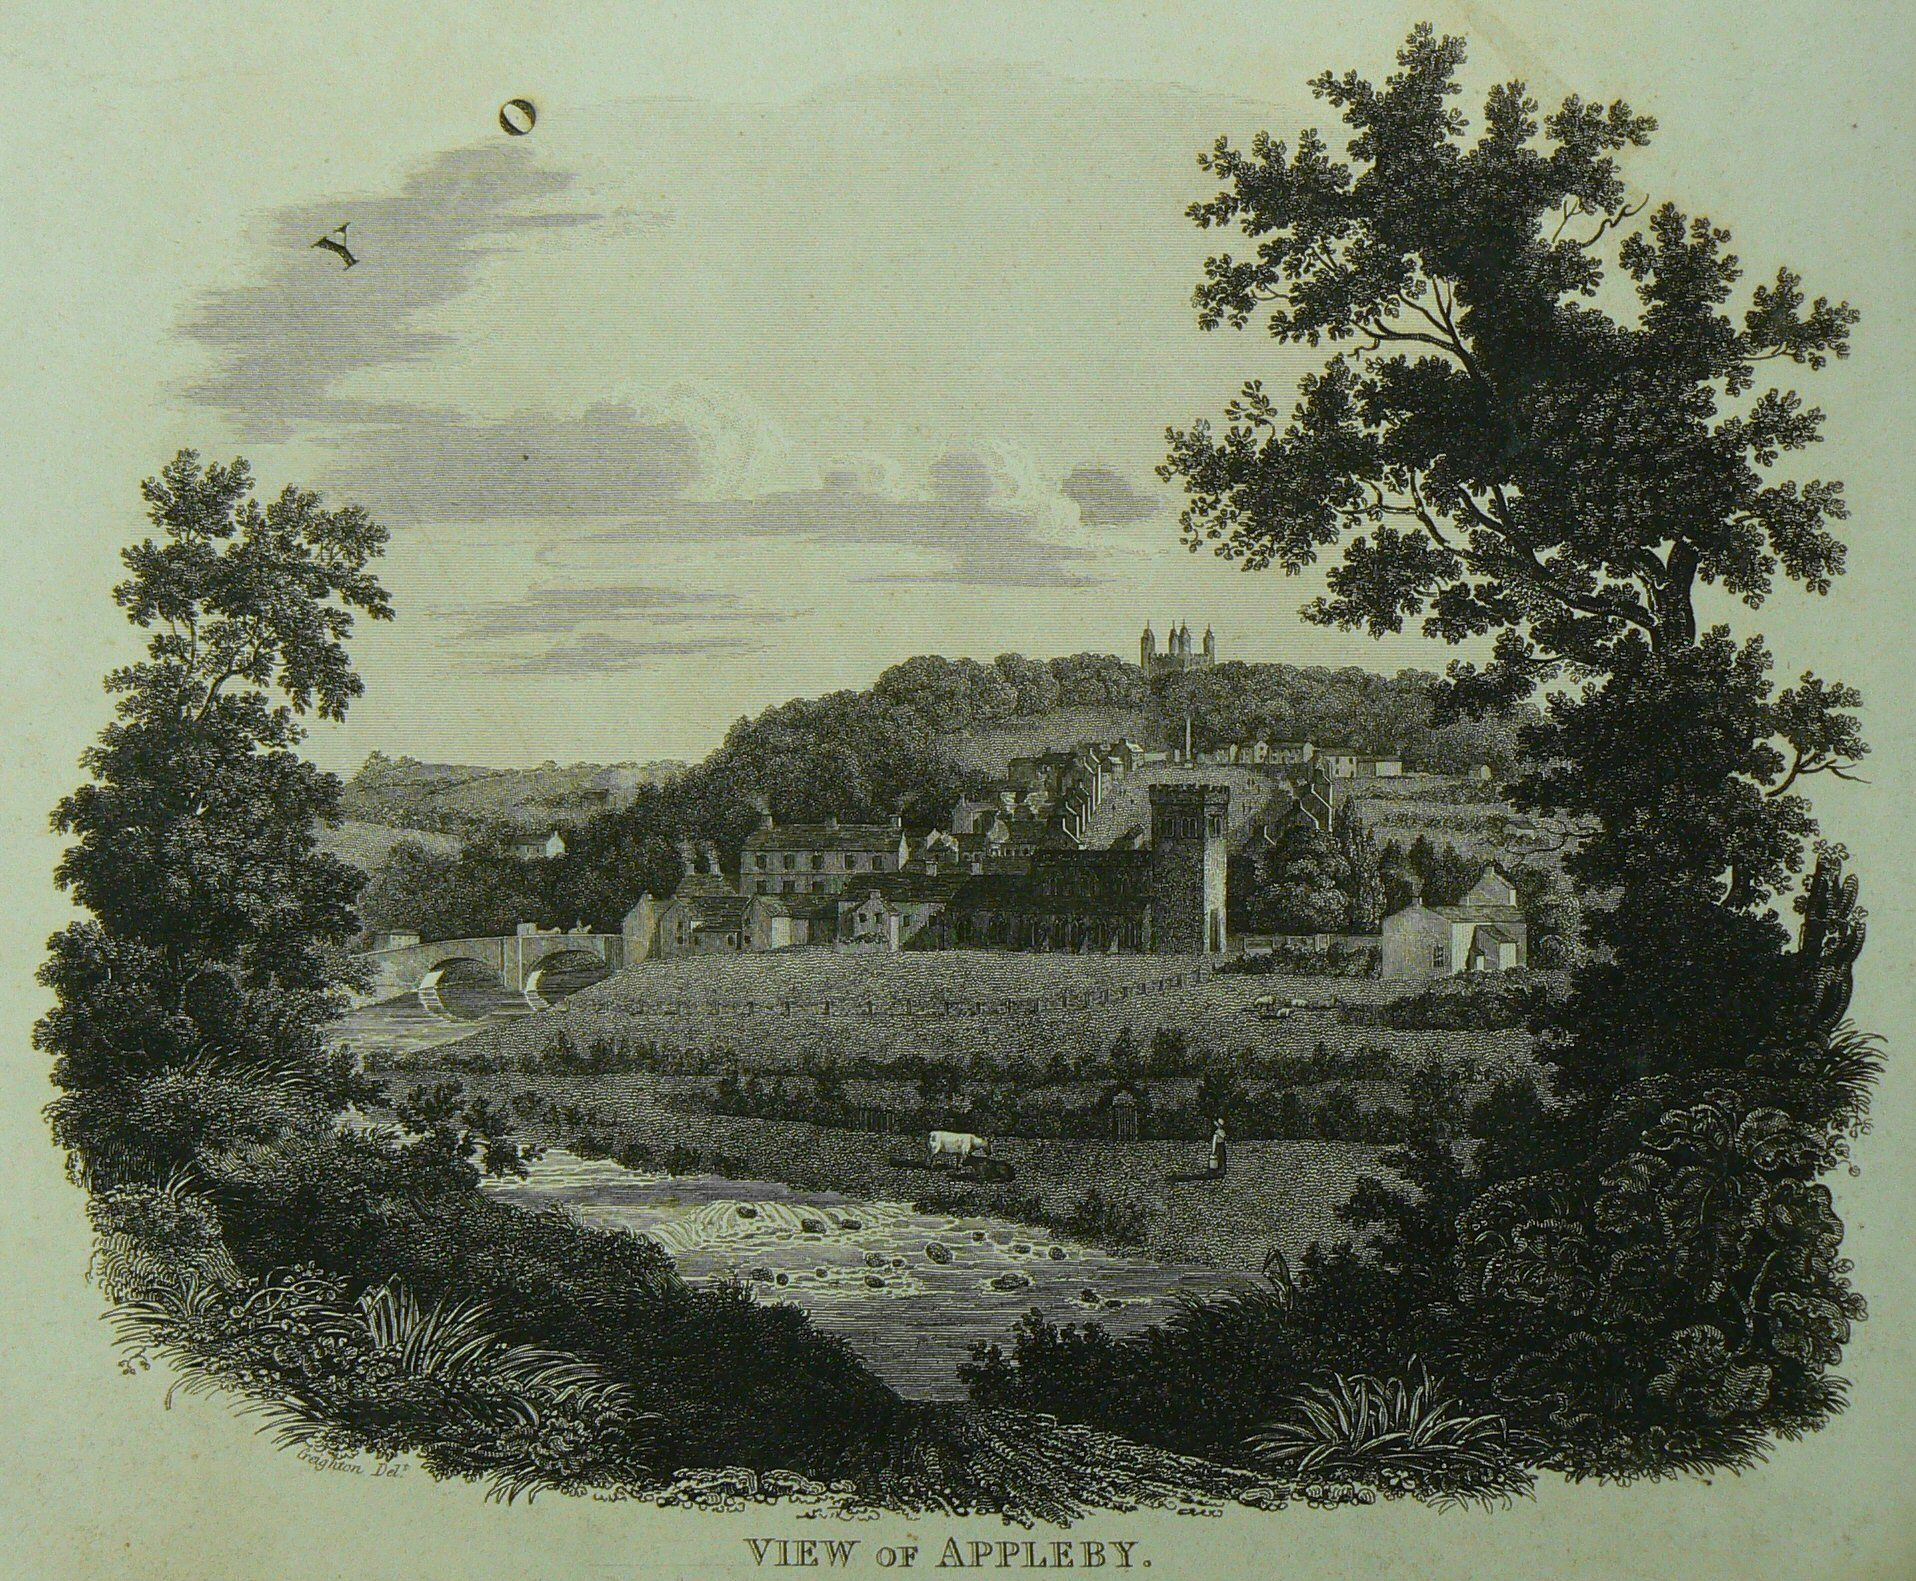 View of Appleby